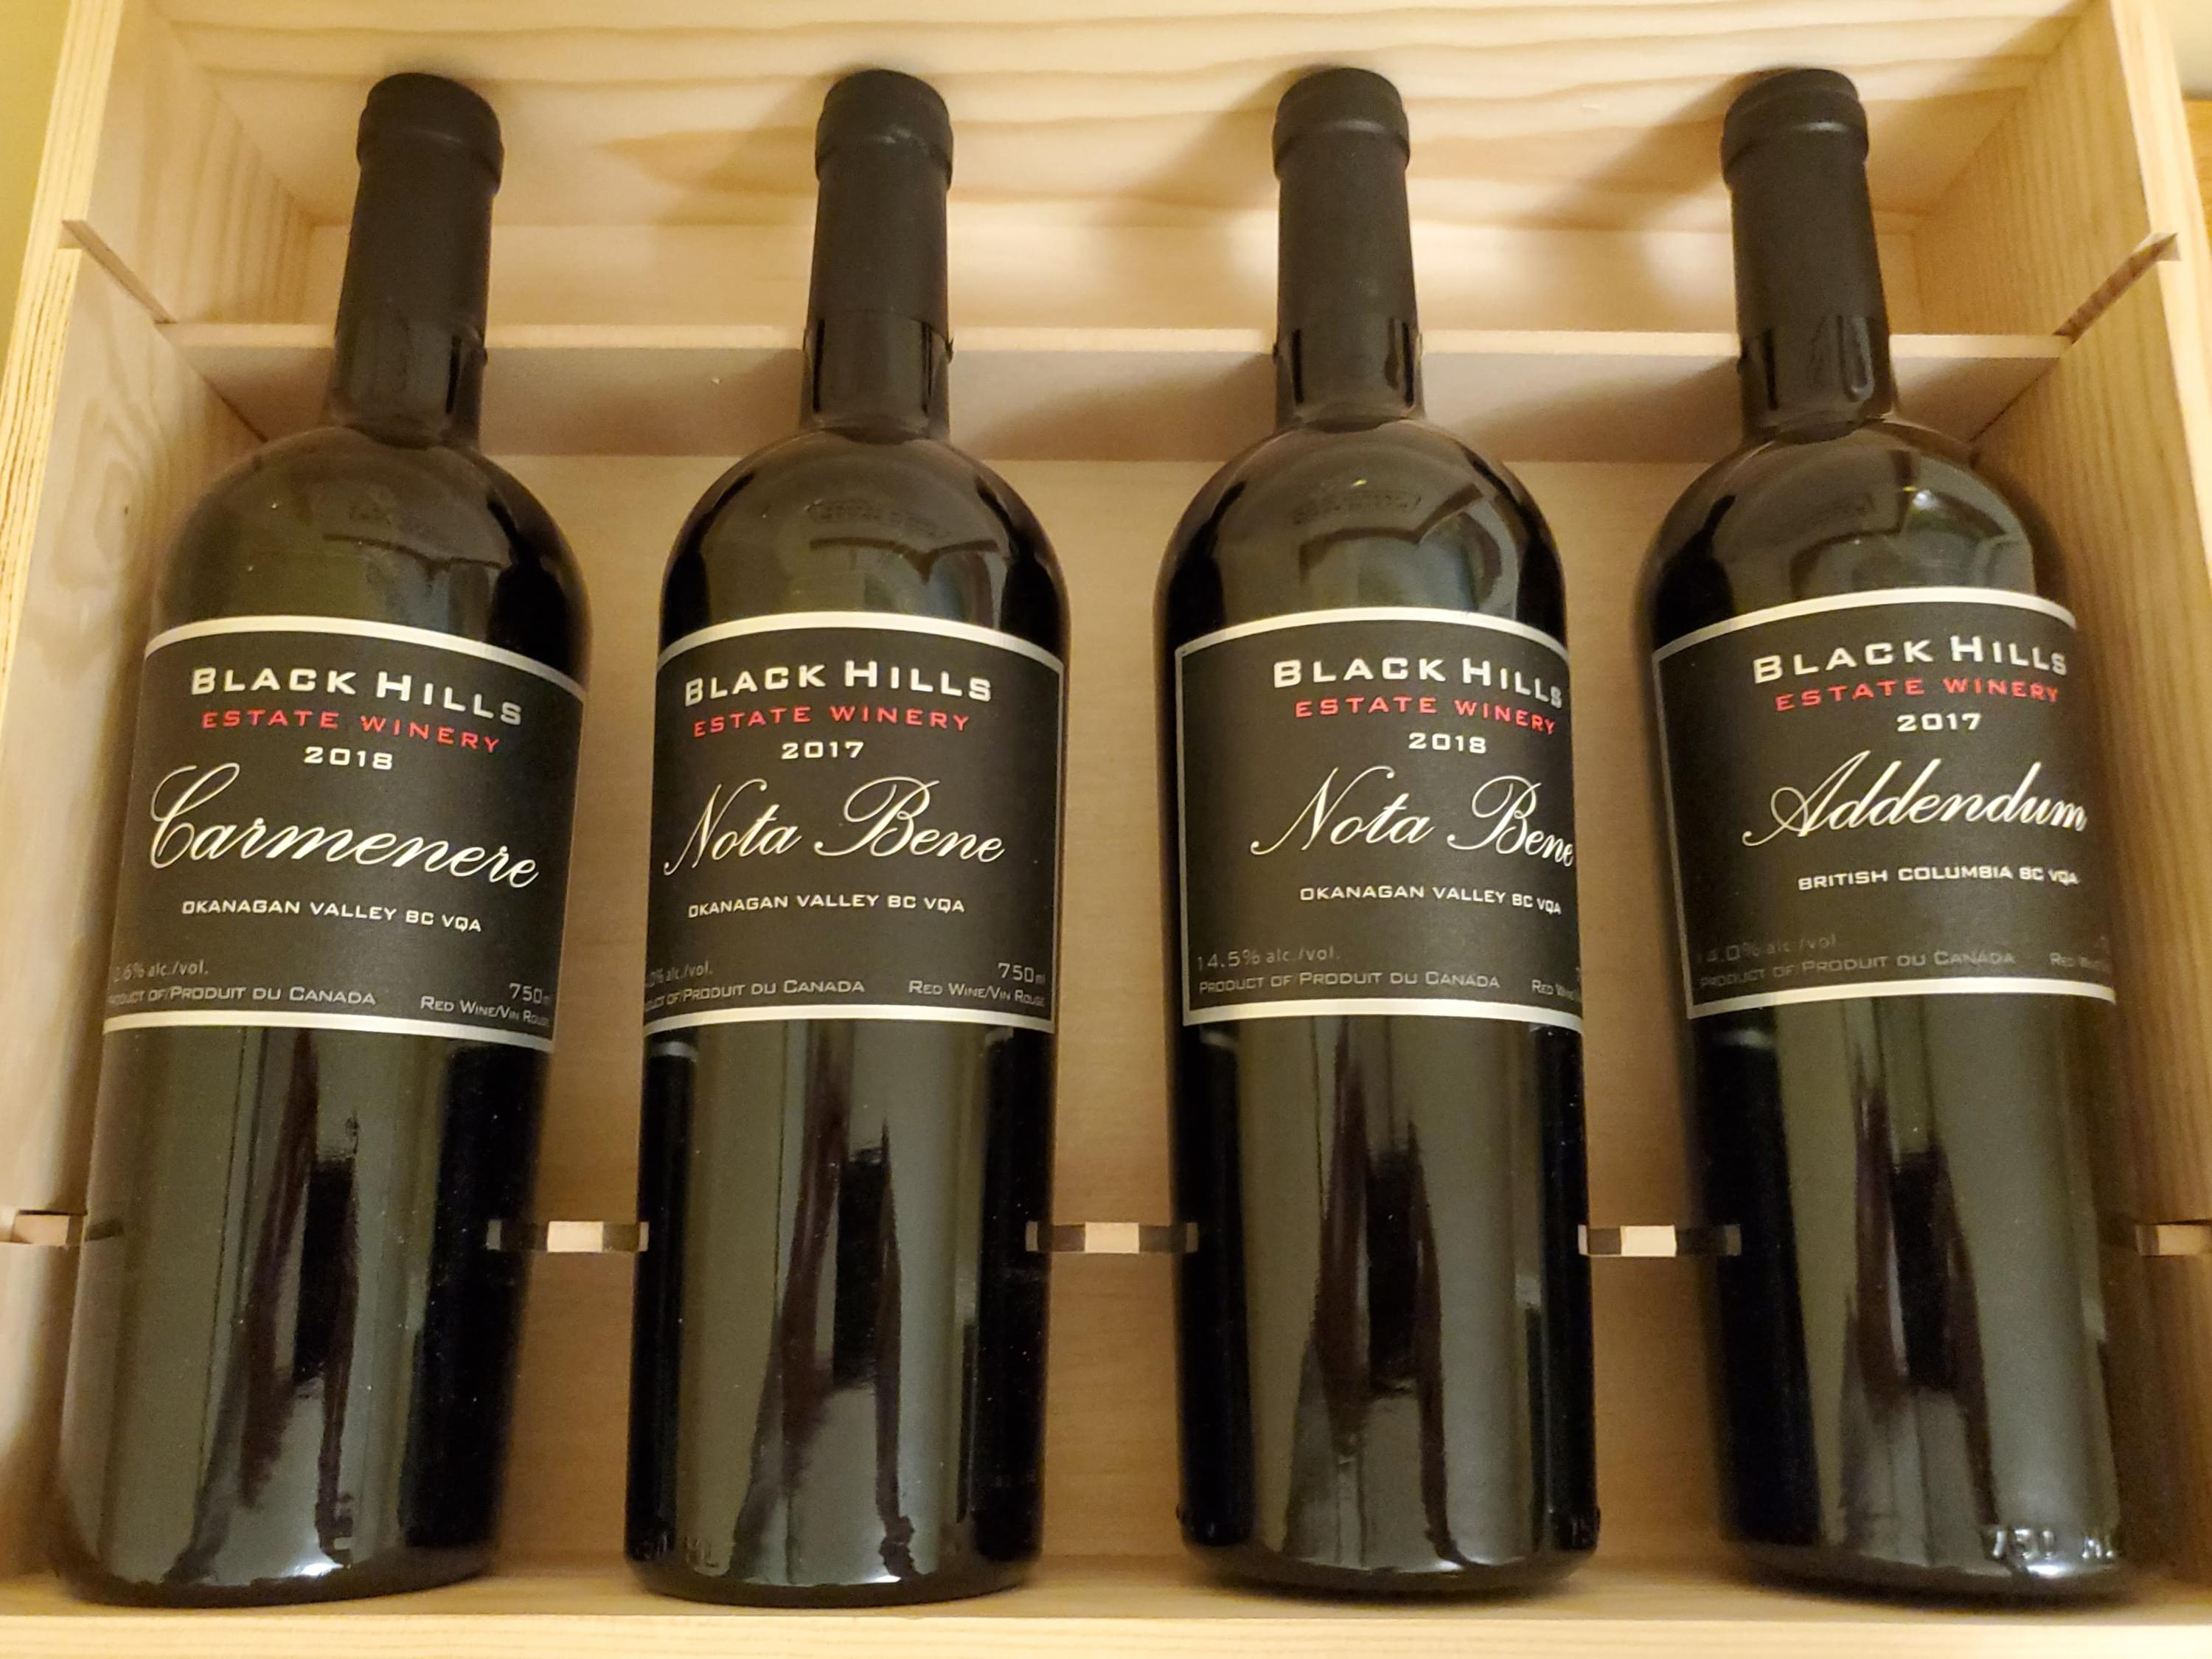 Black Hills Estate Winery Collector Pack